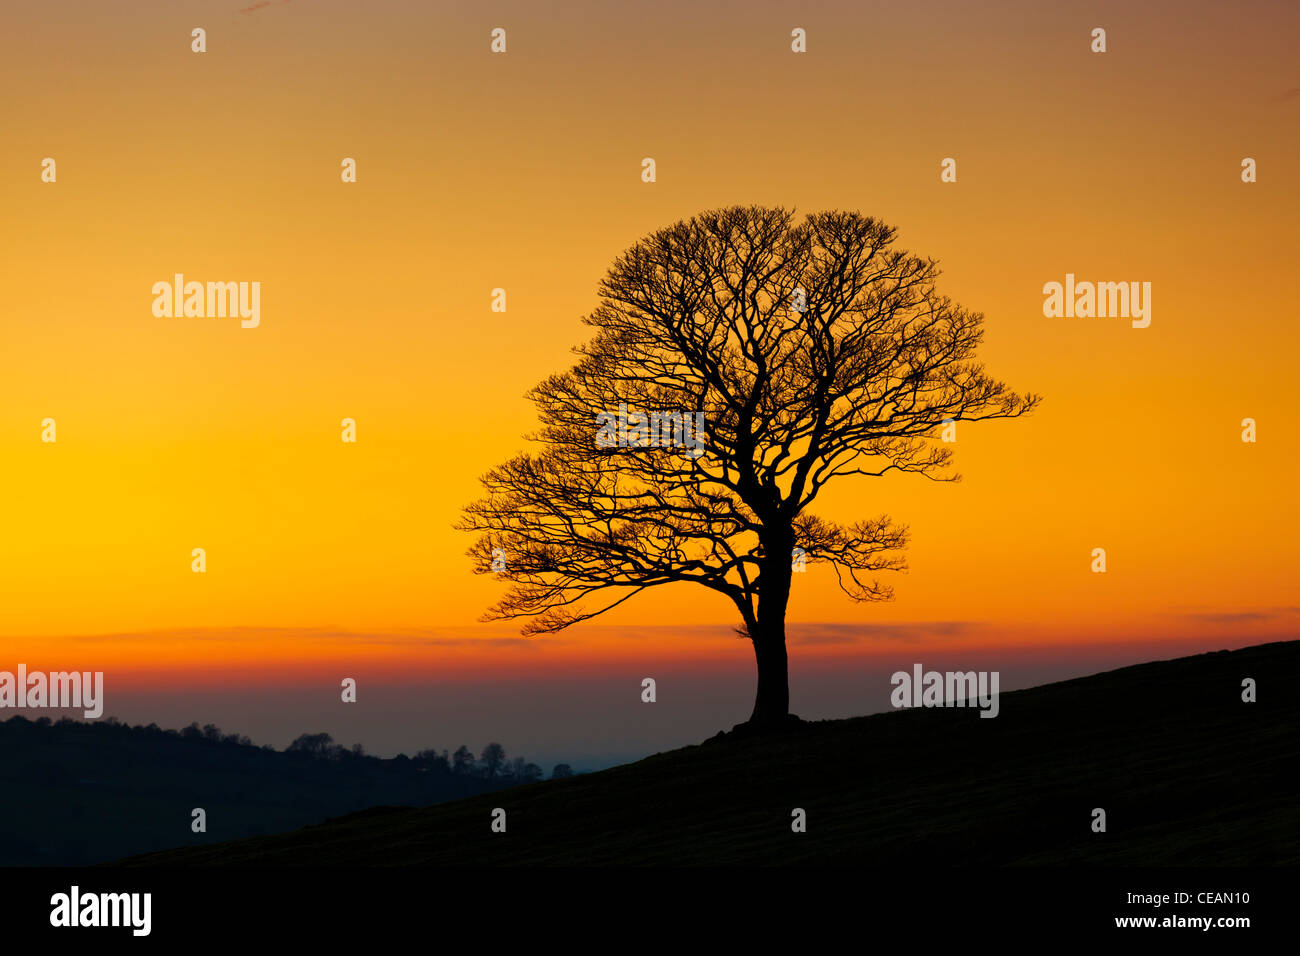 one tree empty of leaves in winter at sunset in the Roaches near Leek Staffordshire England UK GB EU Europe - Stock Image